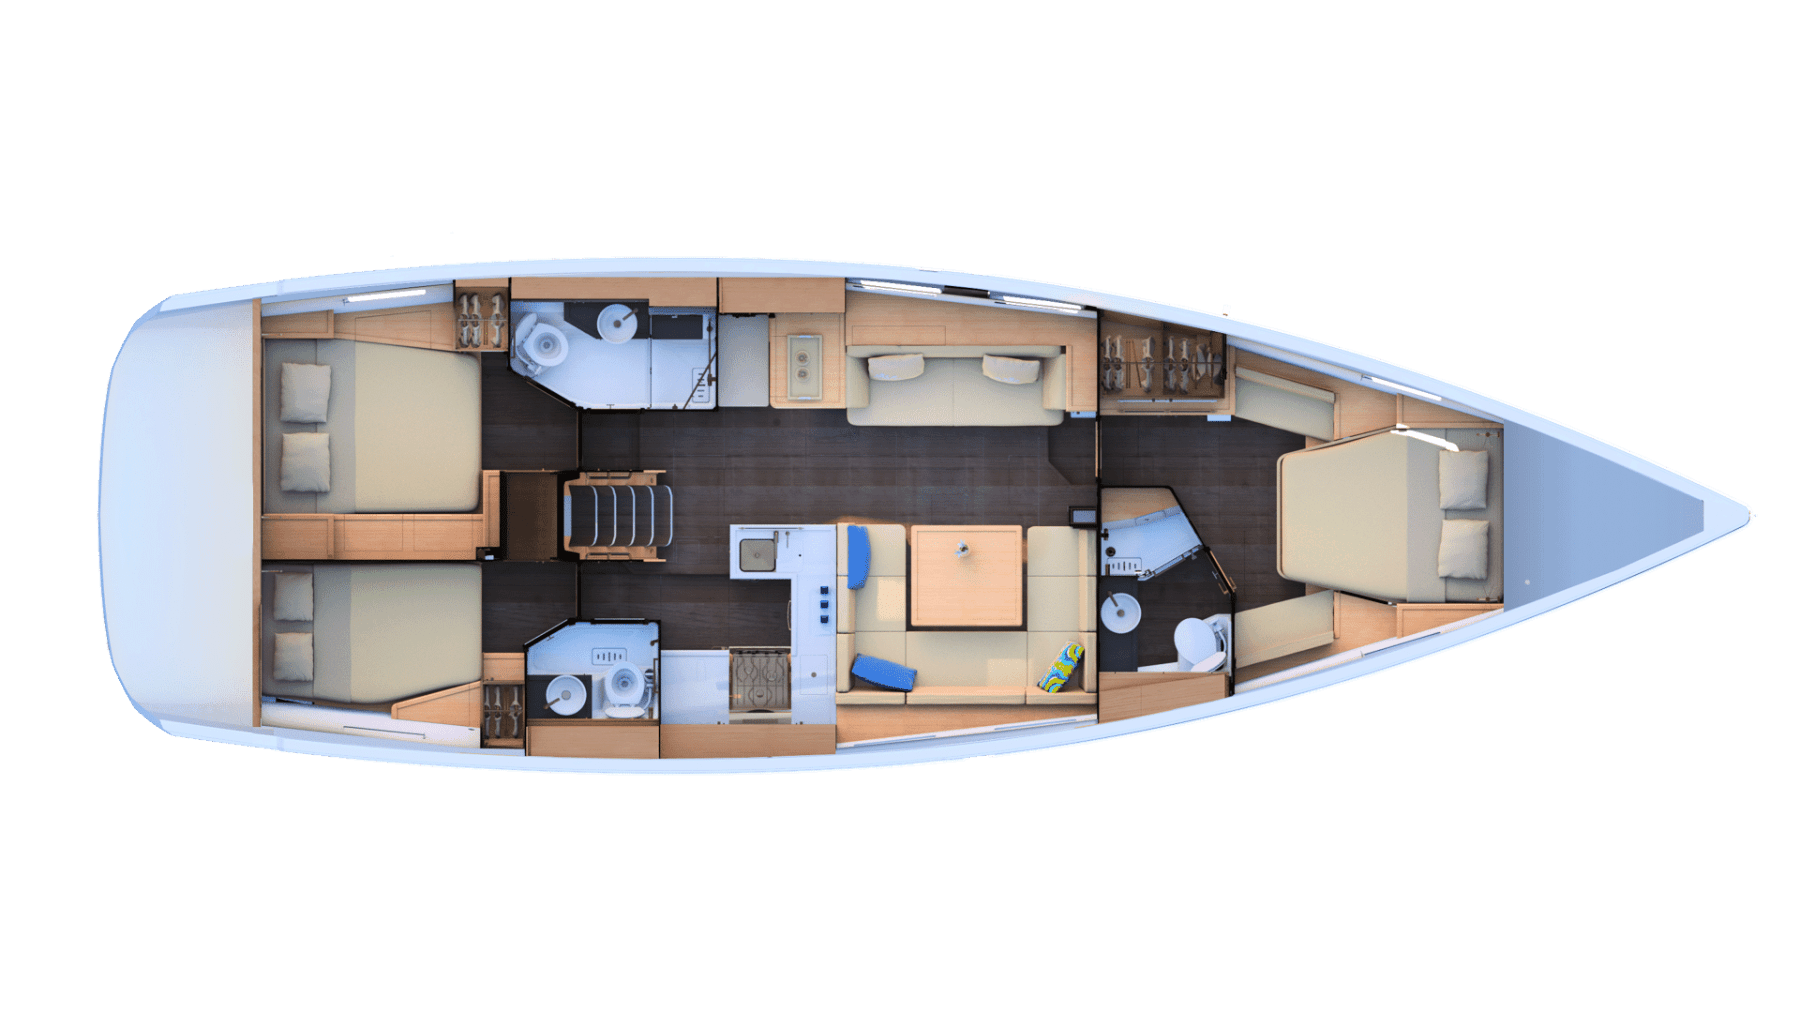 Jeanneau-51-layout-5-charter-ownership-yacht